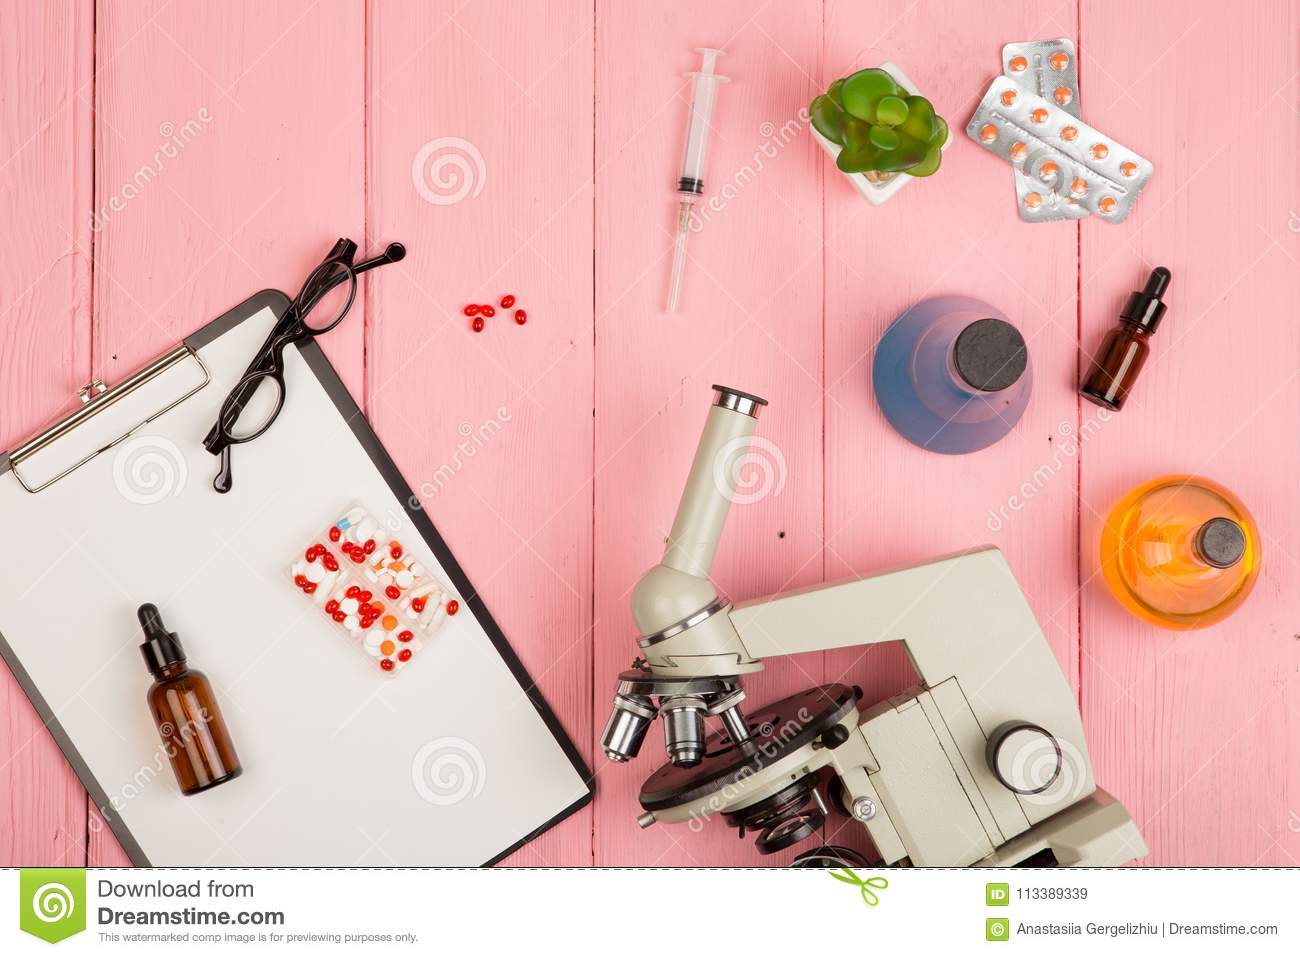 Workplace scientist doctor - microscope, pills, syringe, eyeglasses, chemical flasks with liquid, clipboard on pink wooden table